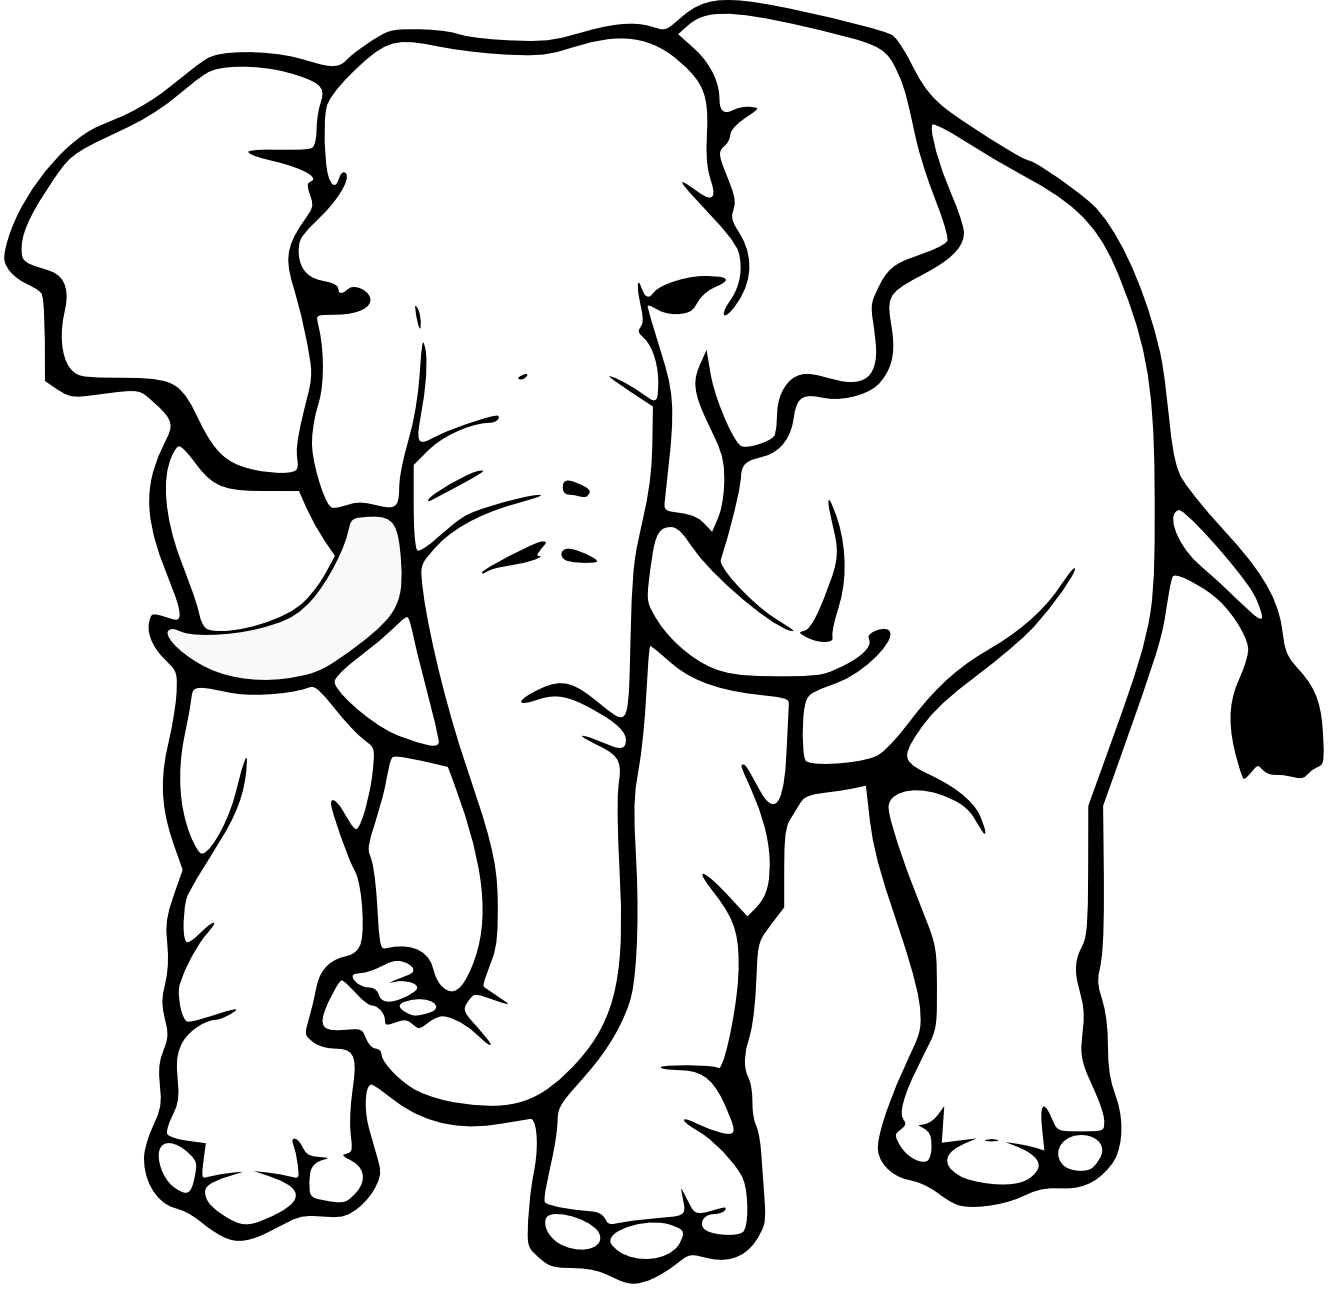 Grassland elephant clipart black and white picture royalty free library Free White Elephant Clipart, Download Free Clip Art, Free Clip Art ... picture royalty free library